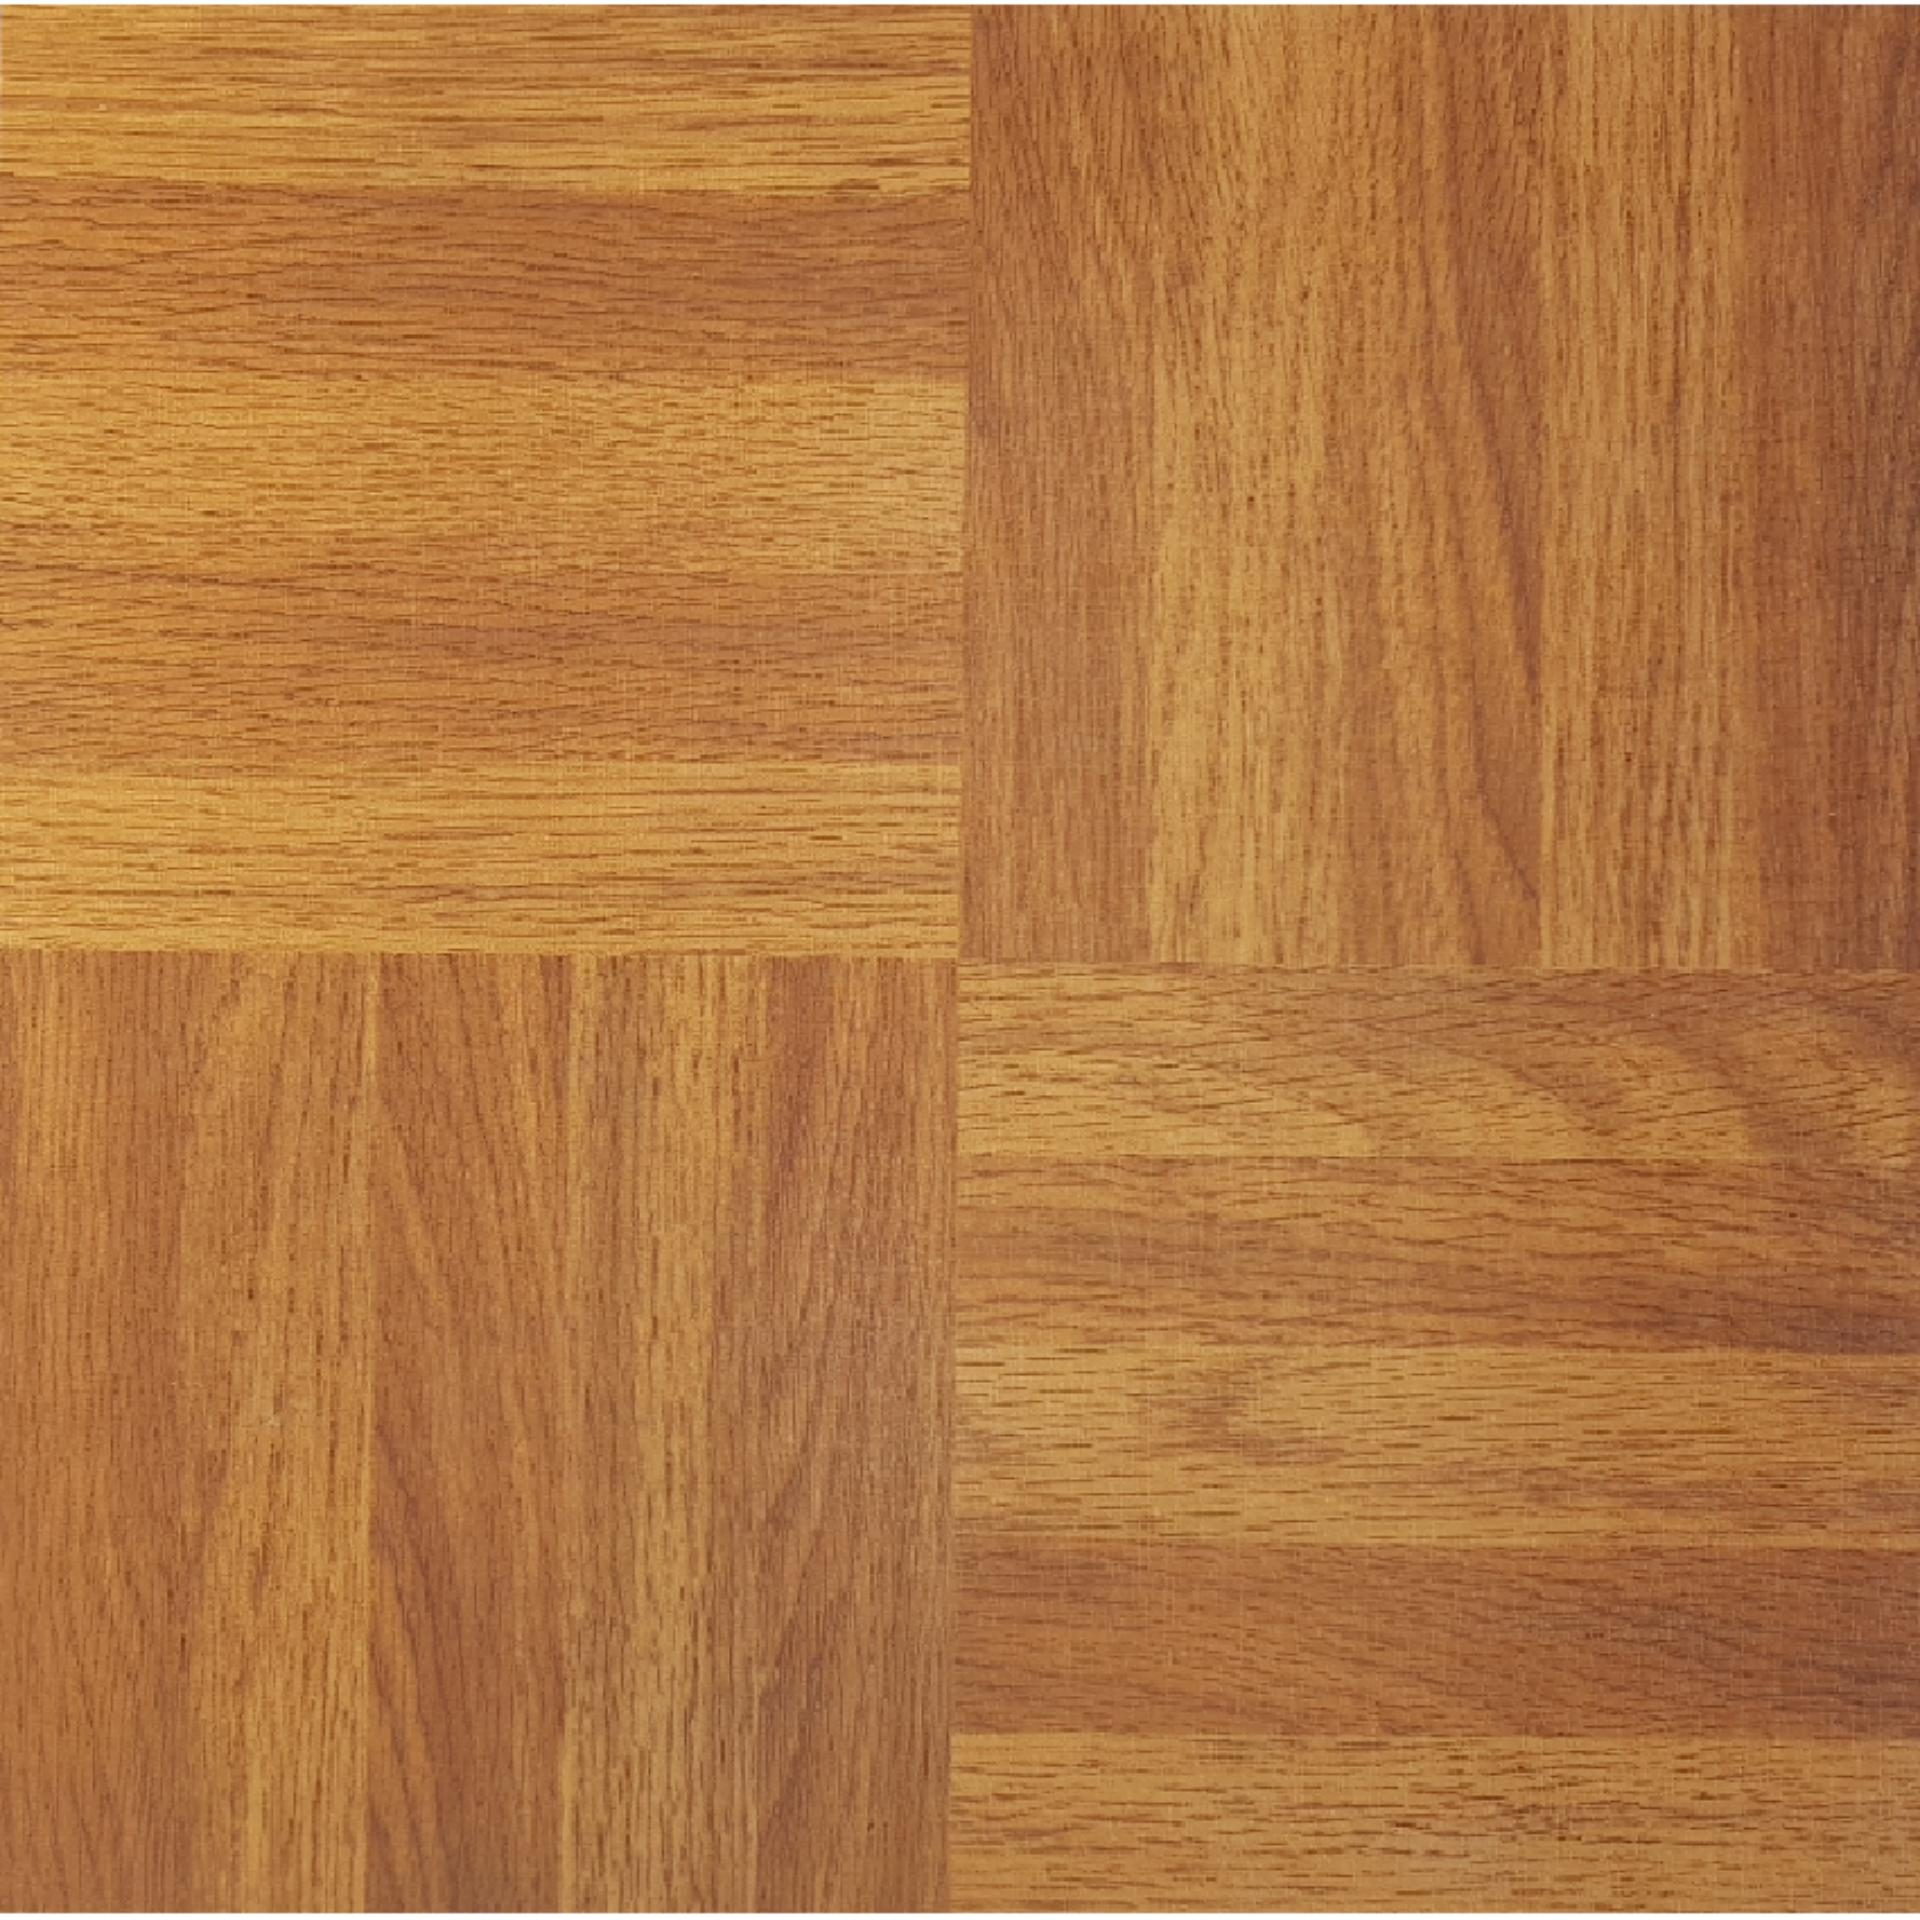 Vinyl tiles for sale vinyl flooring prices brands review in uni luxury vinyl tile flooring 60pcs box wooden 4 squares dailygadgetfo Image collections